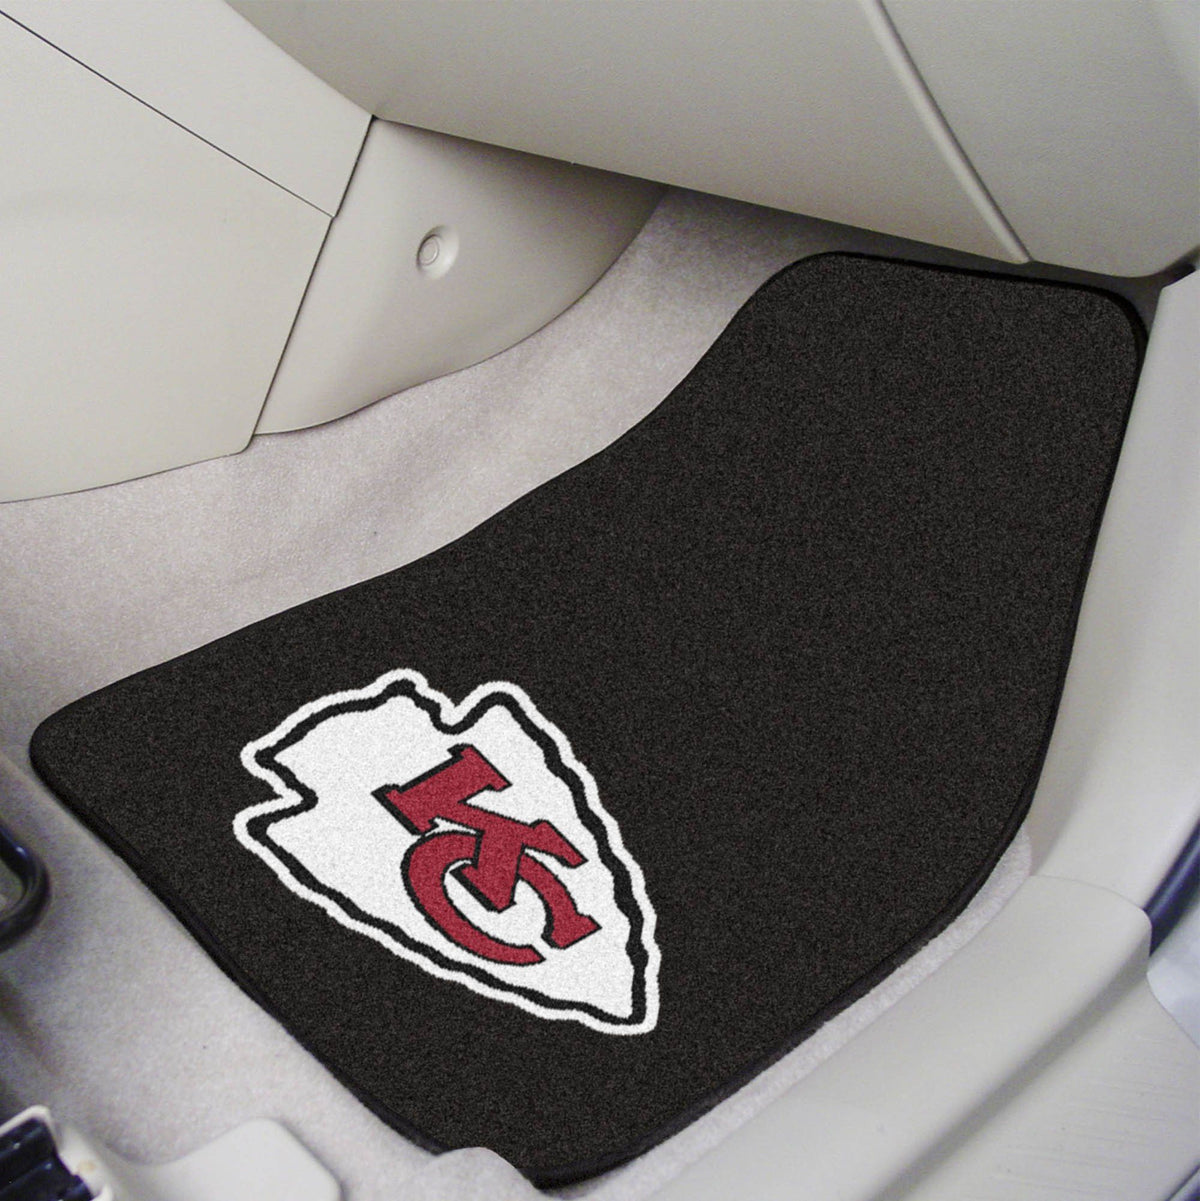 "NFL - 2-pc Carpet Car Mat Set, 17"" x 27"" NFL Mats, Front Car Mats, 2-pc Carpet Car Mat Set, NFL, Auto Fan Mats Kansas City Chiefs"